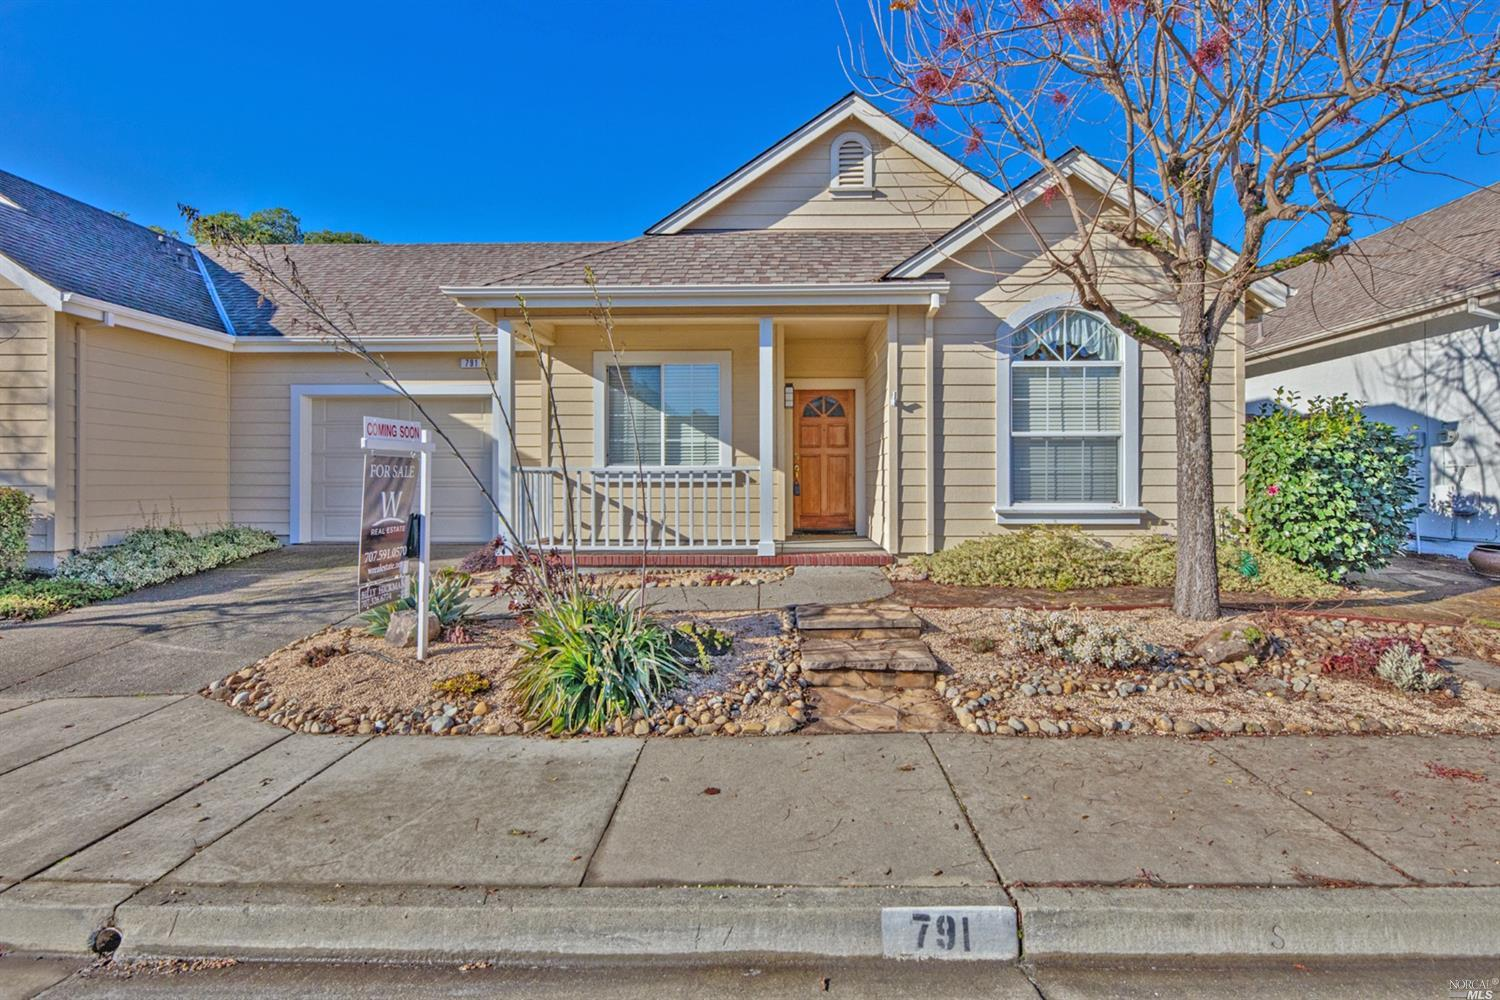 Well maintained and move in ready. This home offers cozy and comfortable living in this highly desir